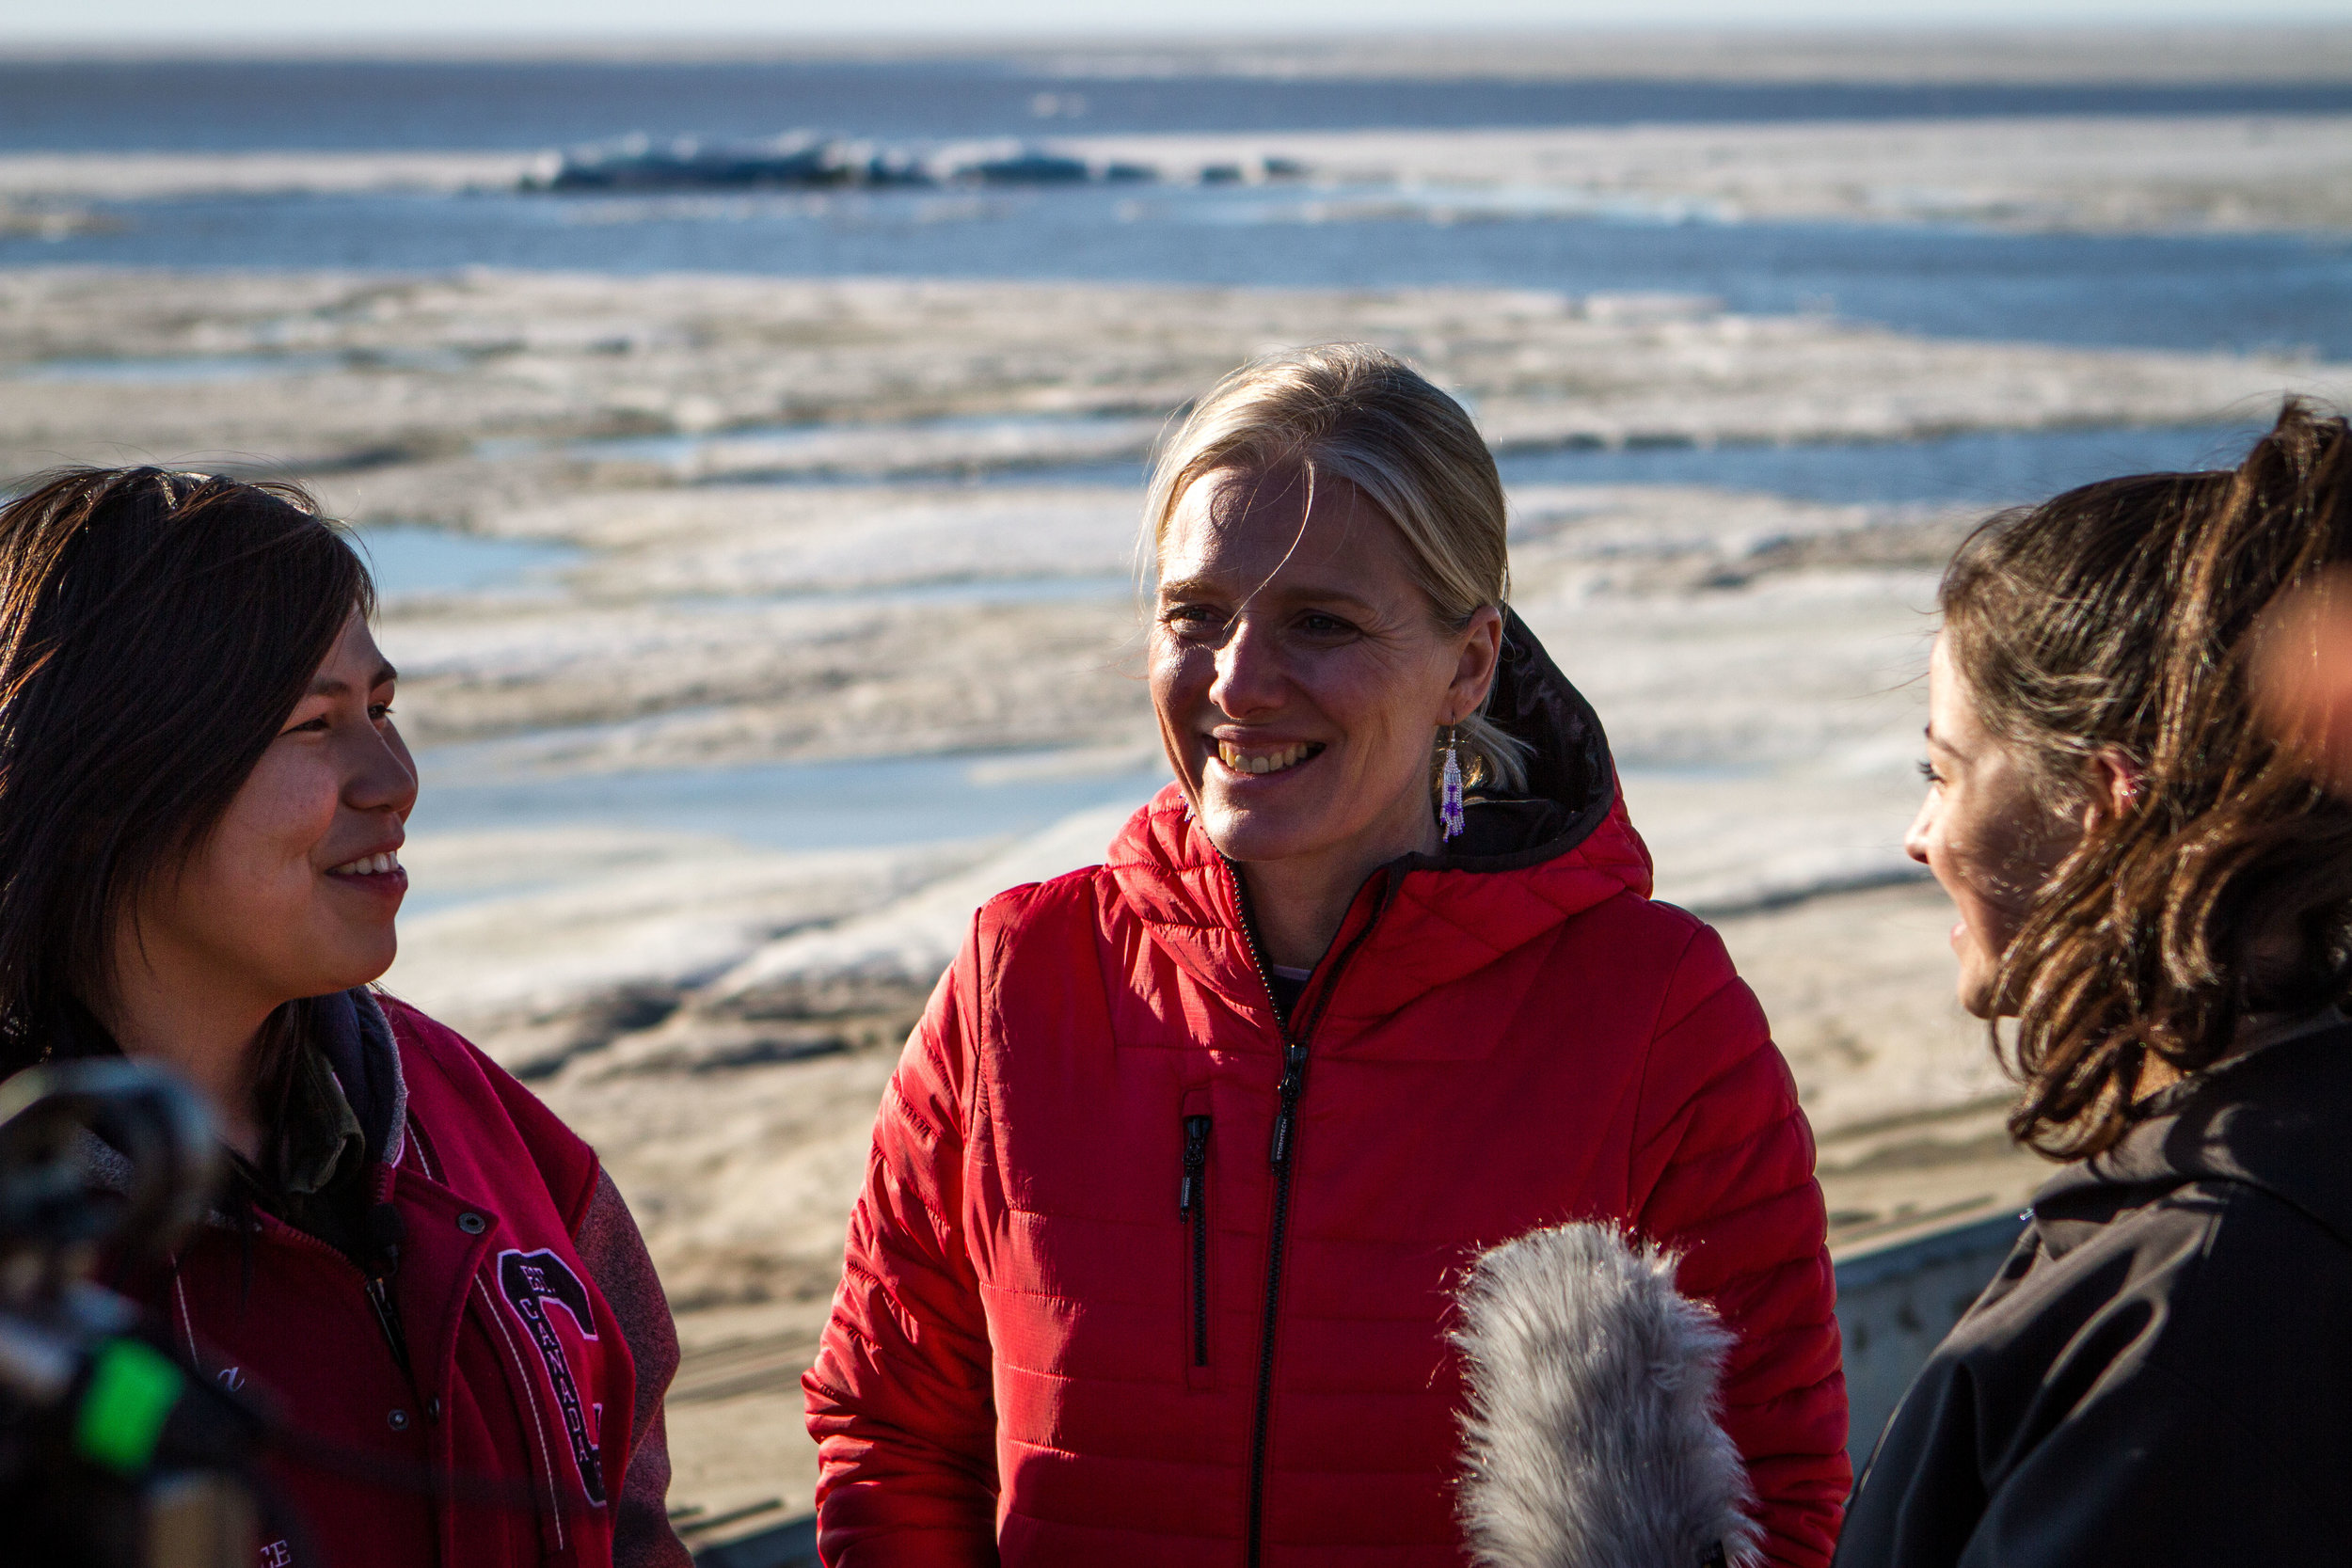 Carmen Kuptana and Eriel Lugt interviewing Minister Catherine McKenna during her visit in Tuk for the Inuit strategy launch on climate change. Photo: Maeva Gauthier.